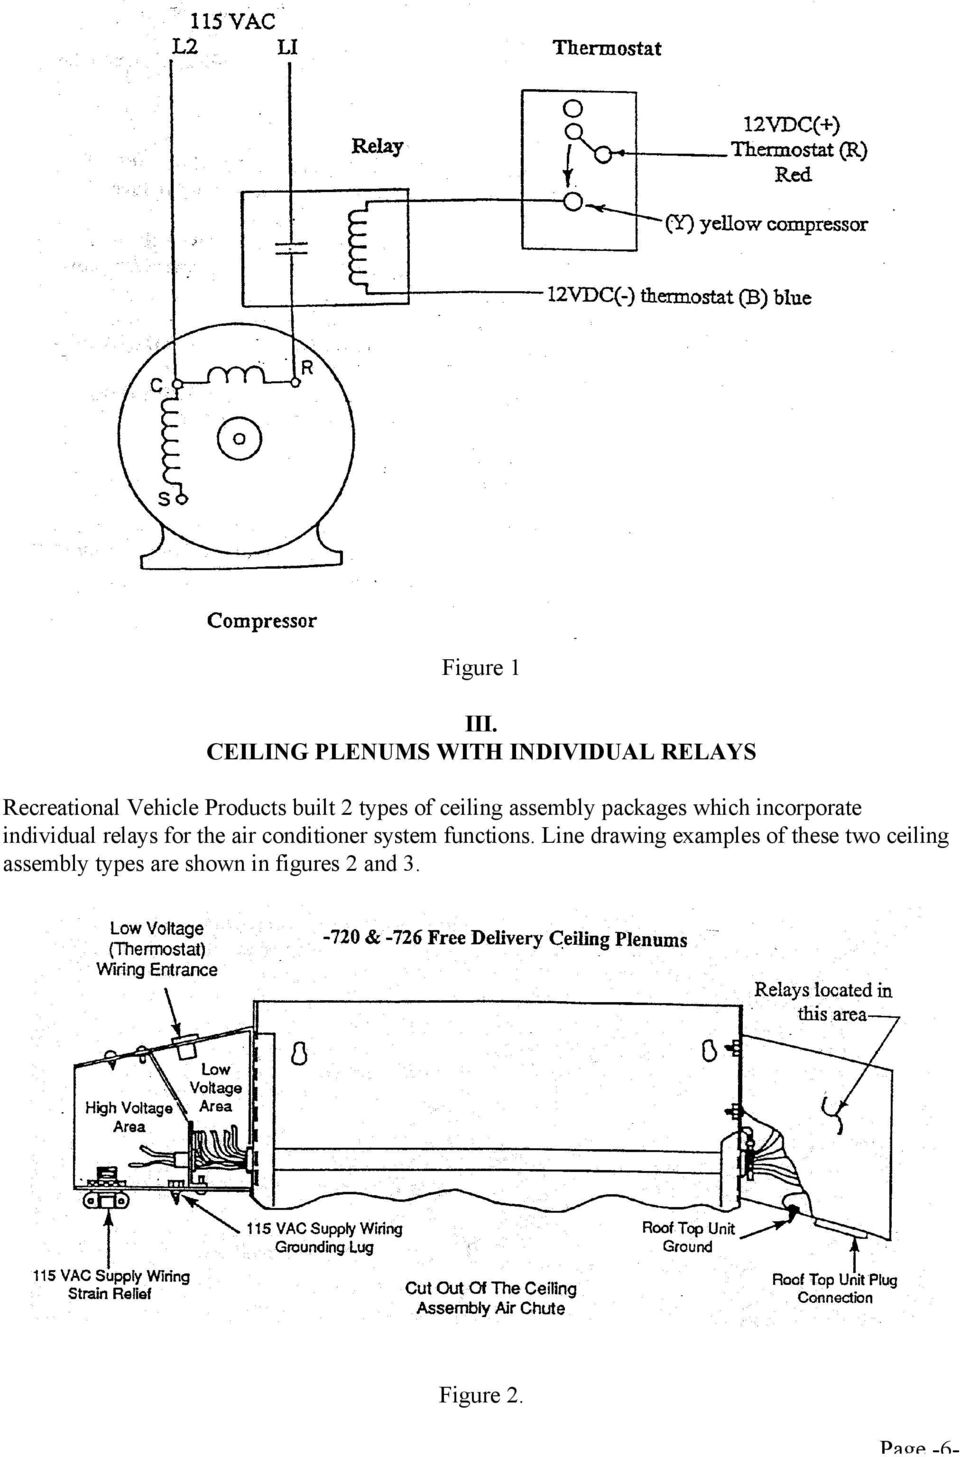 types of ceiling assembly packages which incorporate individual relays for